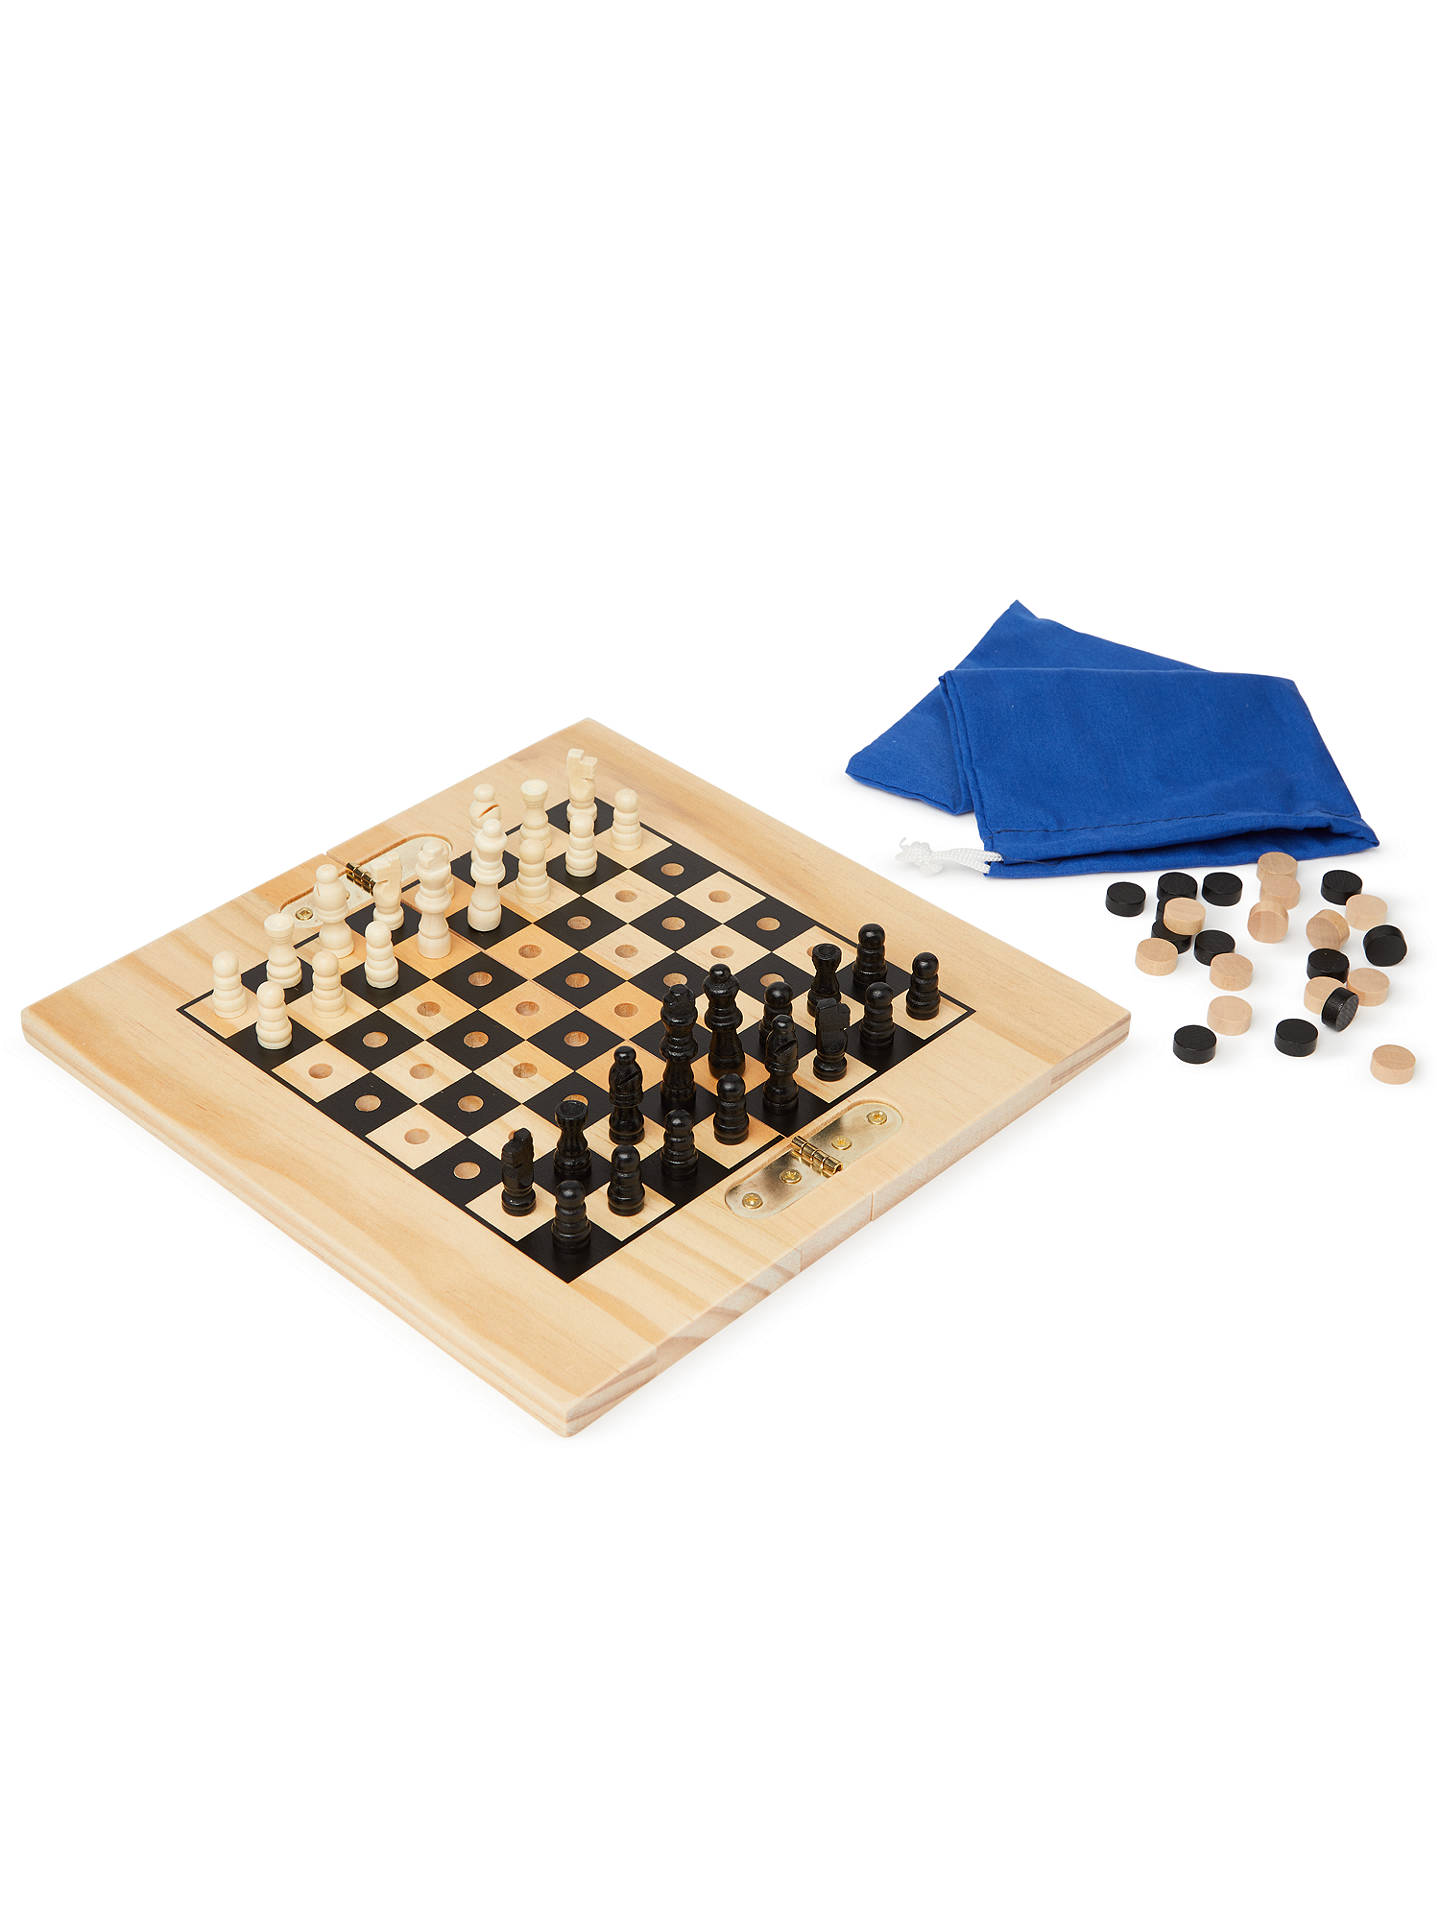 BuyJohn Lewis & Partners Chess & Draughts Wooden Travel Game Online at johnlewis.com